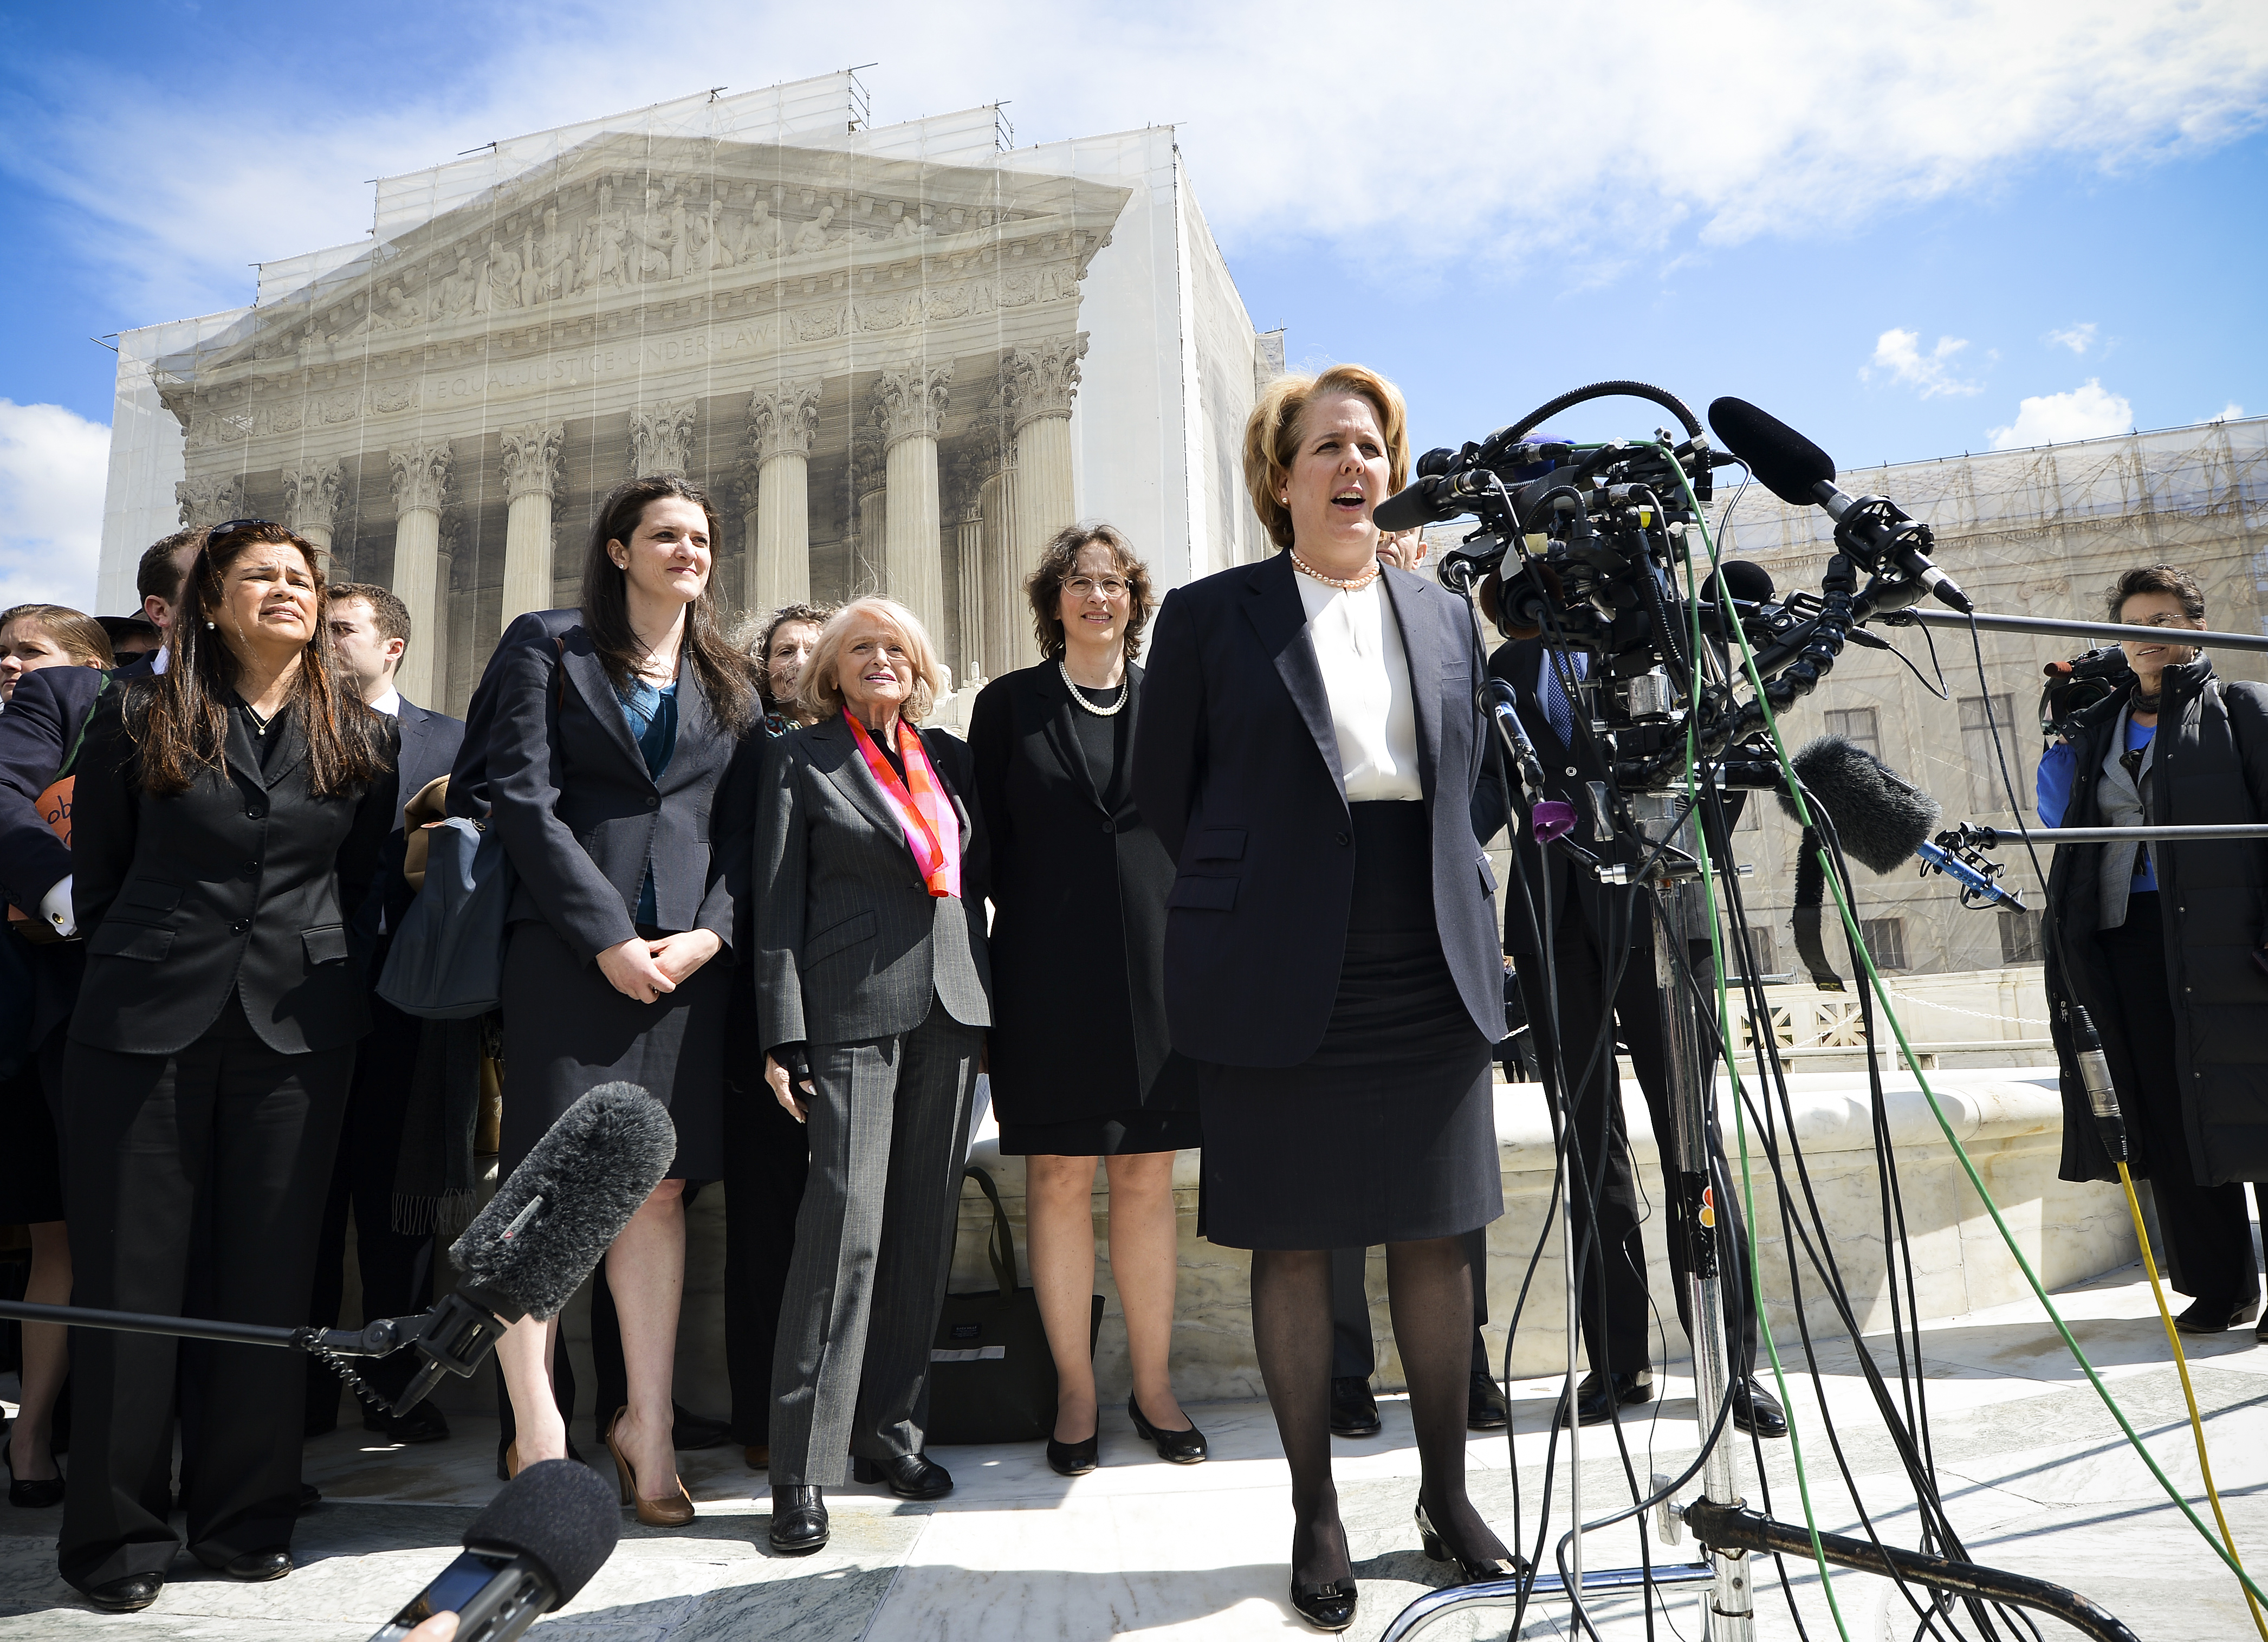 Roberta Kaplan is most famous for arguing the case  US v. Windsor before the Supreme Court in 2013. She represented Edie Windsor (center), an 83-year-old gay widow, which resulted in a landmark decision invalidating Section 3 of the Defense of Marriage Ac